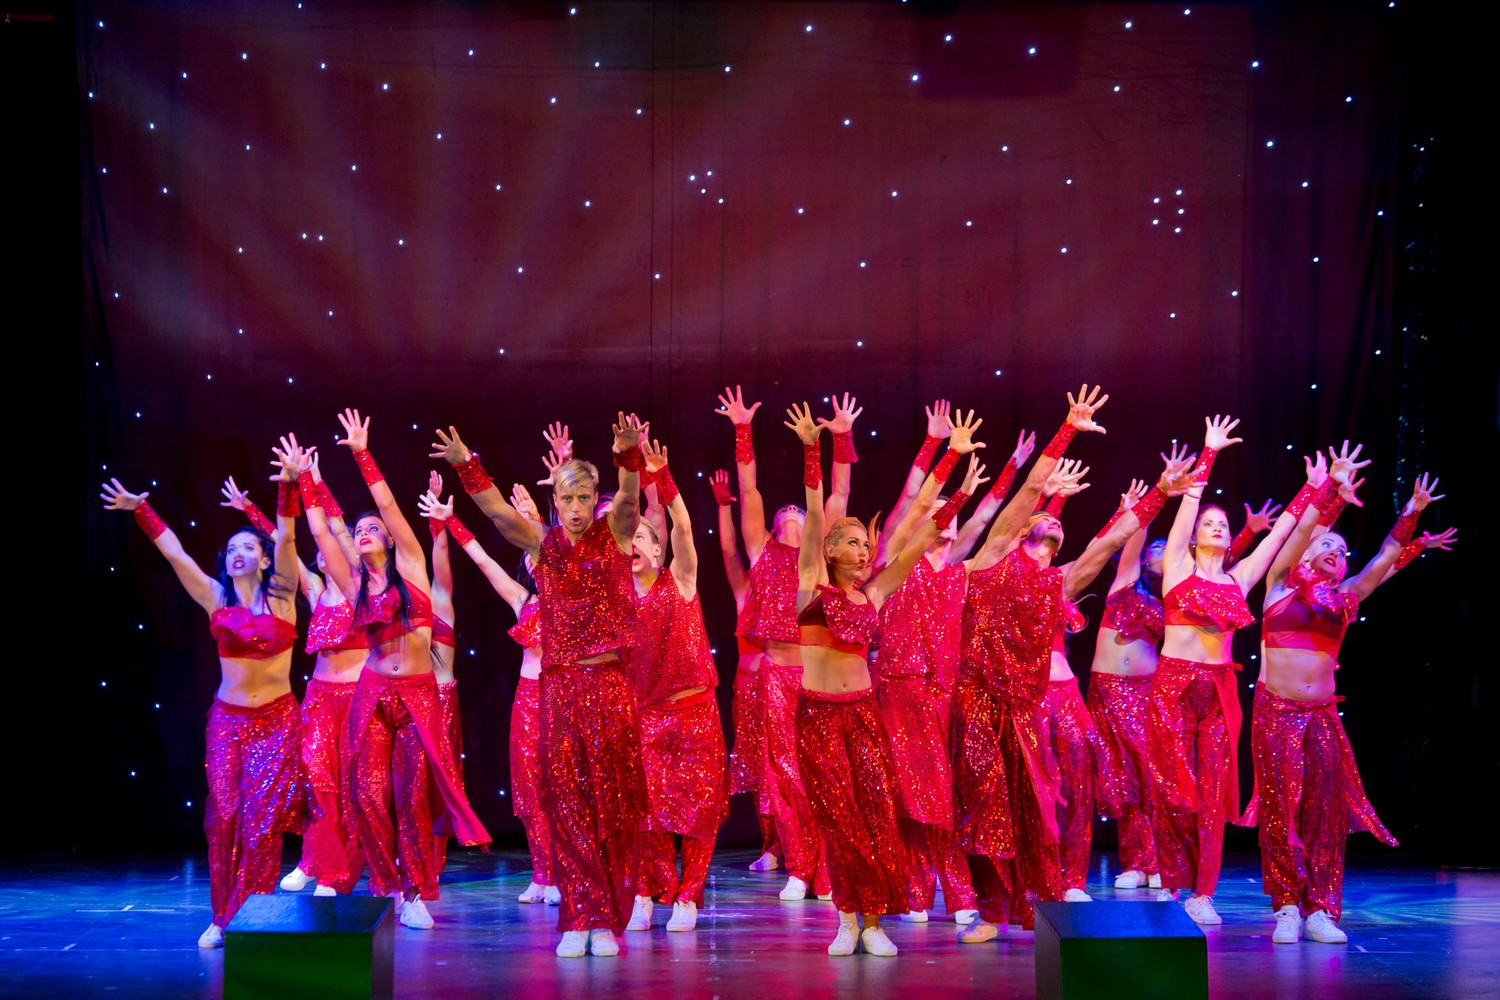 ic_hotels_green_palace_evening_show_24.jpg